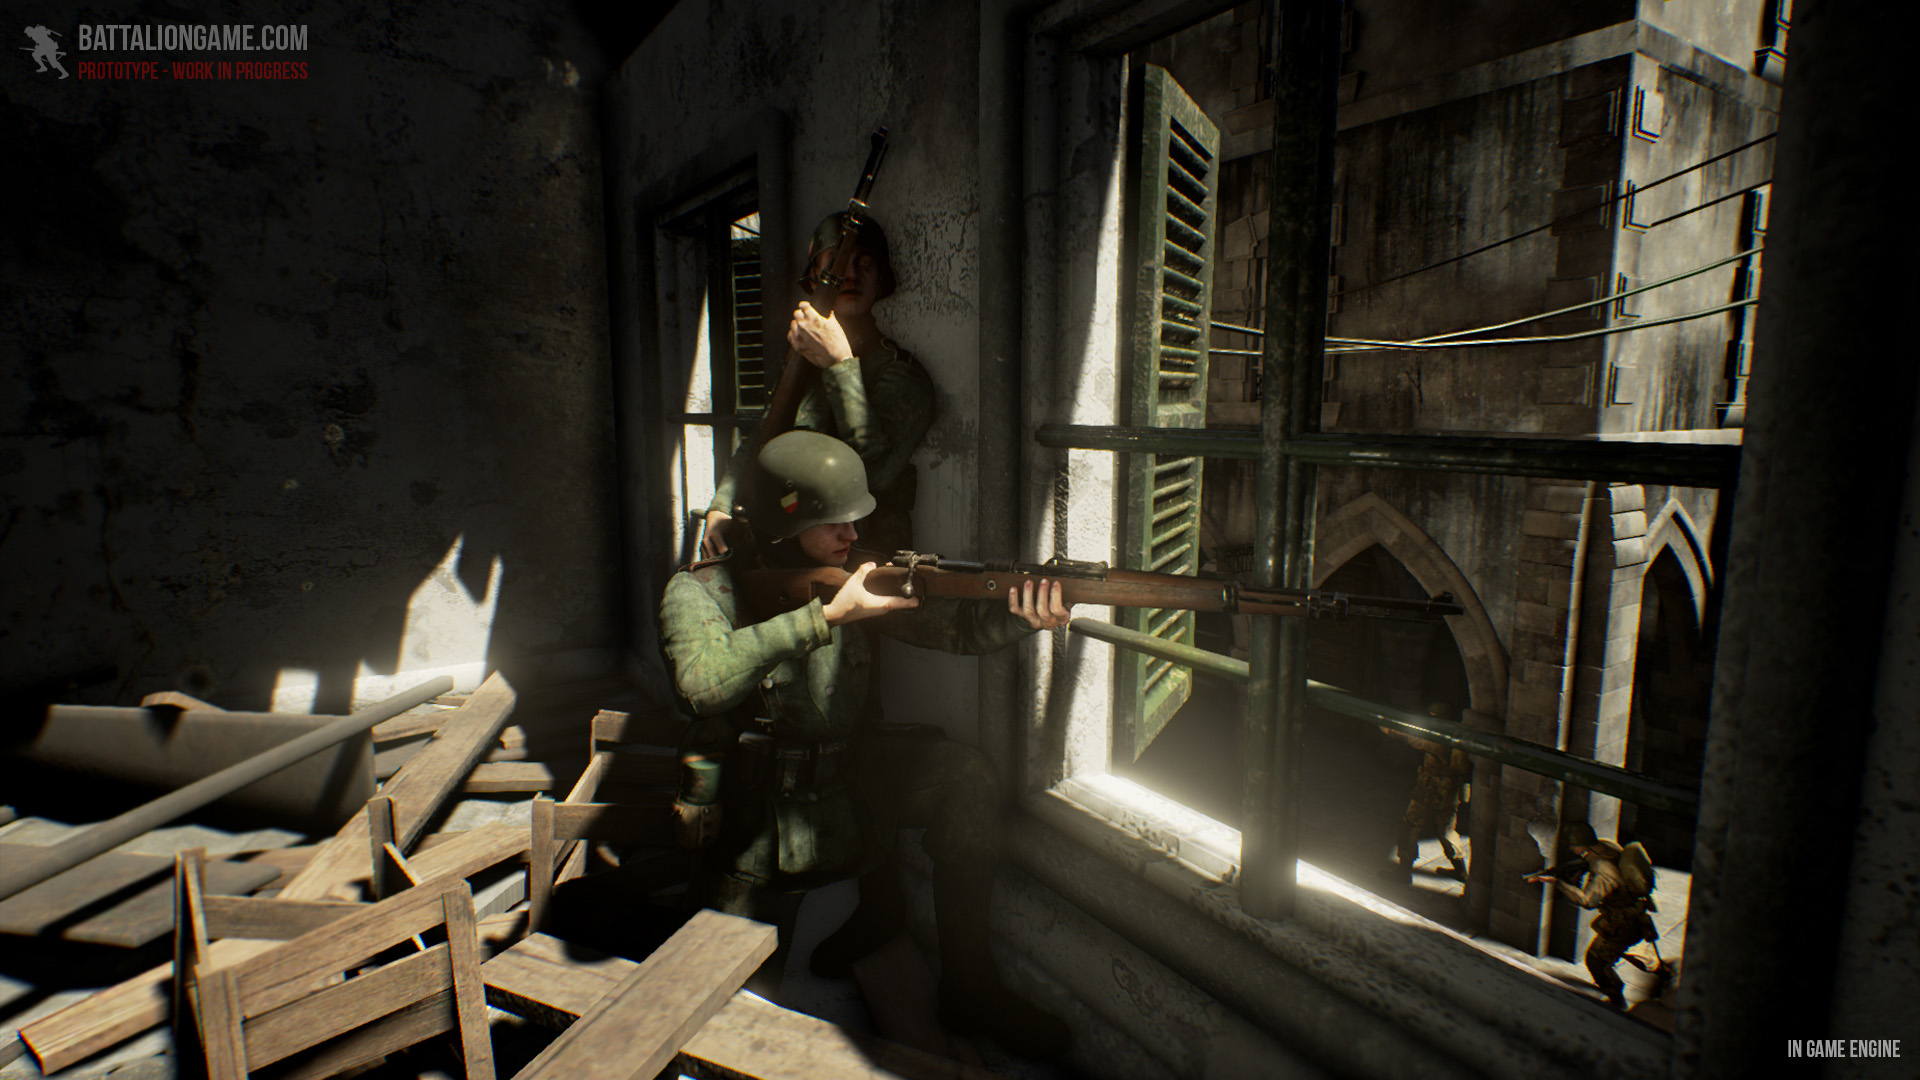 battalion-1944-shows-promise-for-reviving-world-war-2-shooter-genre